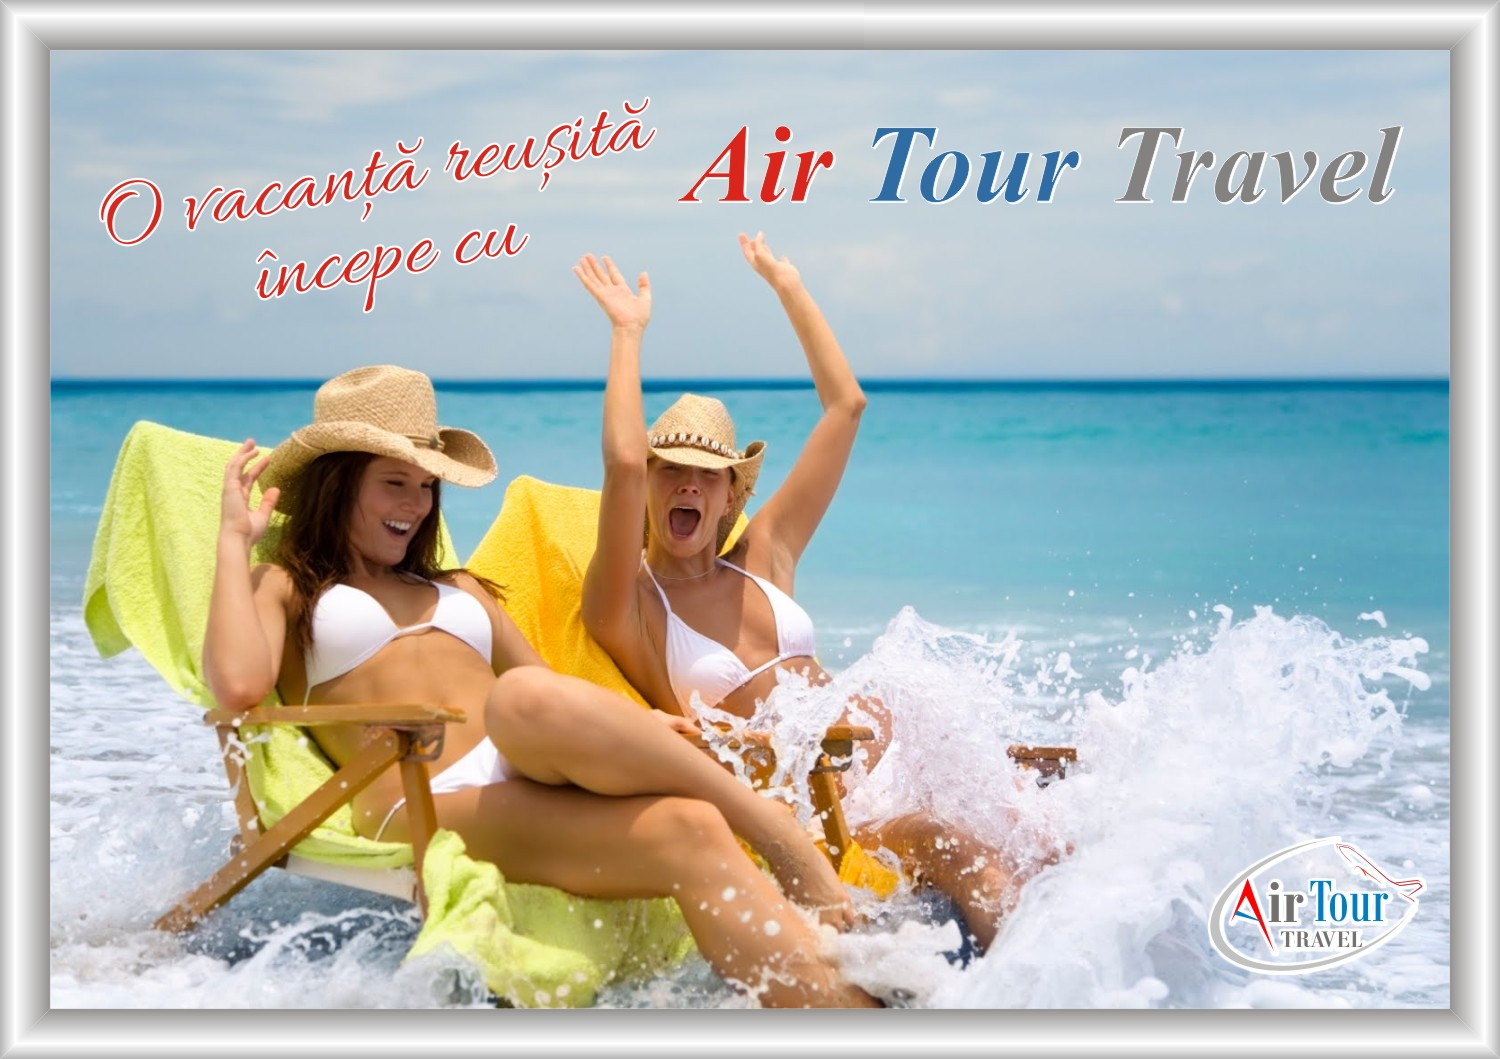 vacanta air tour travel